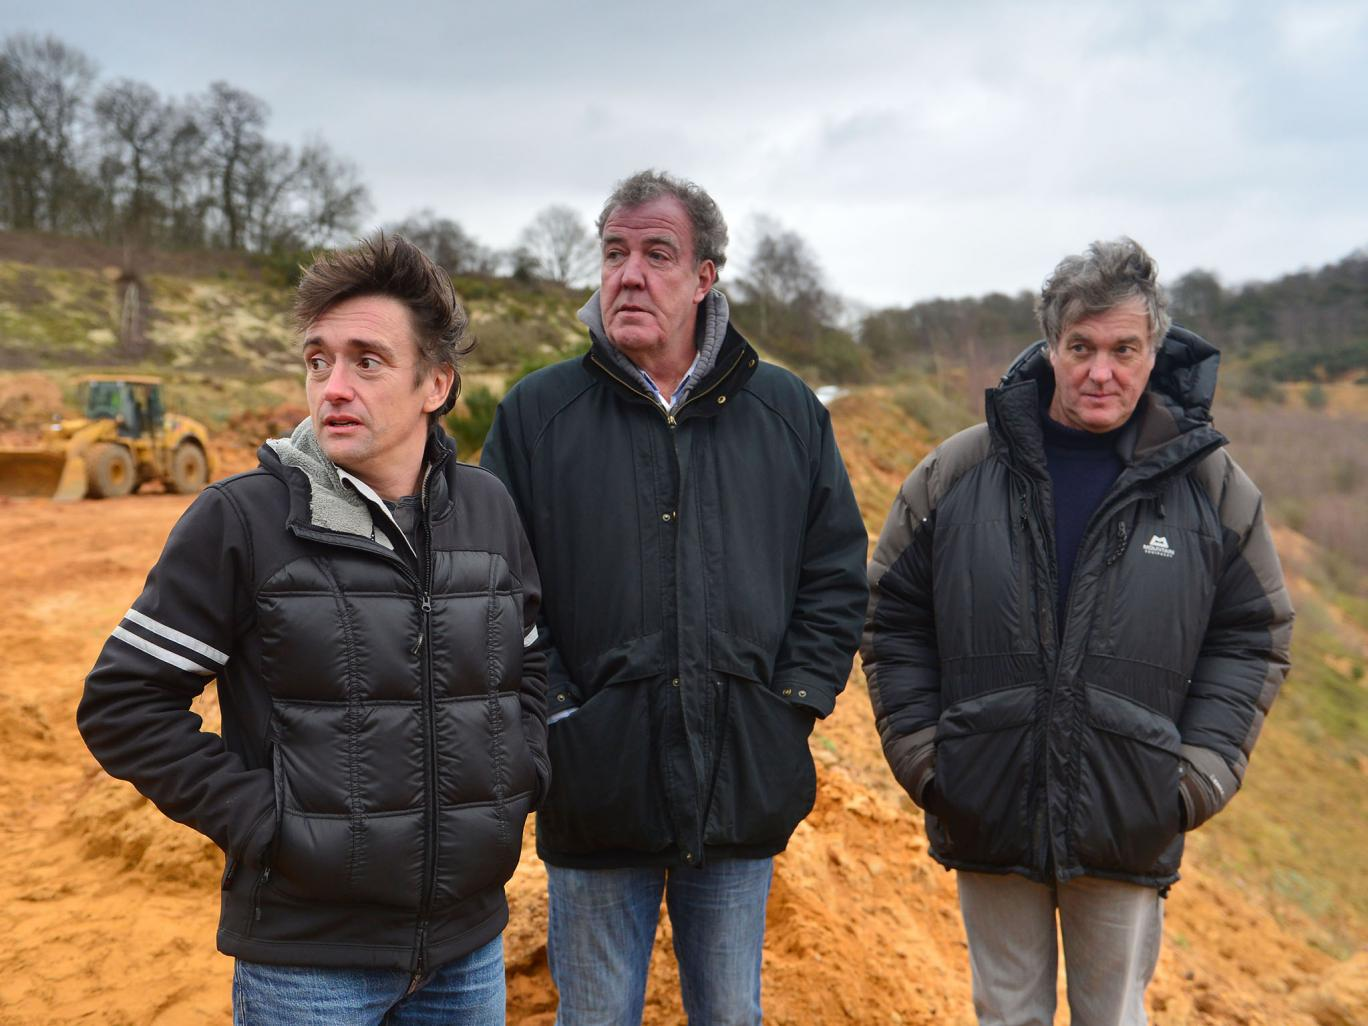 jeremy clarkson s old top gear team being 39 poached 39 from the bbc for new amazon prime car show. Black Bedroom Furniture Sets. Home Design Ideas